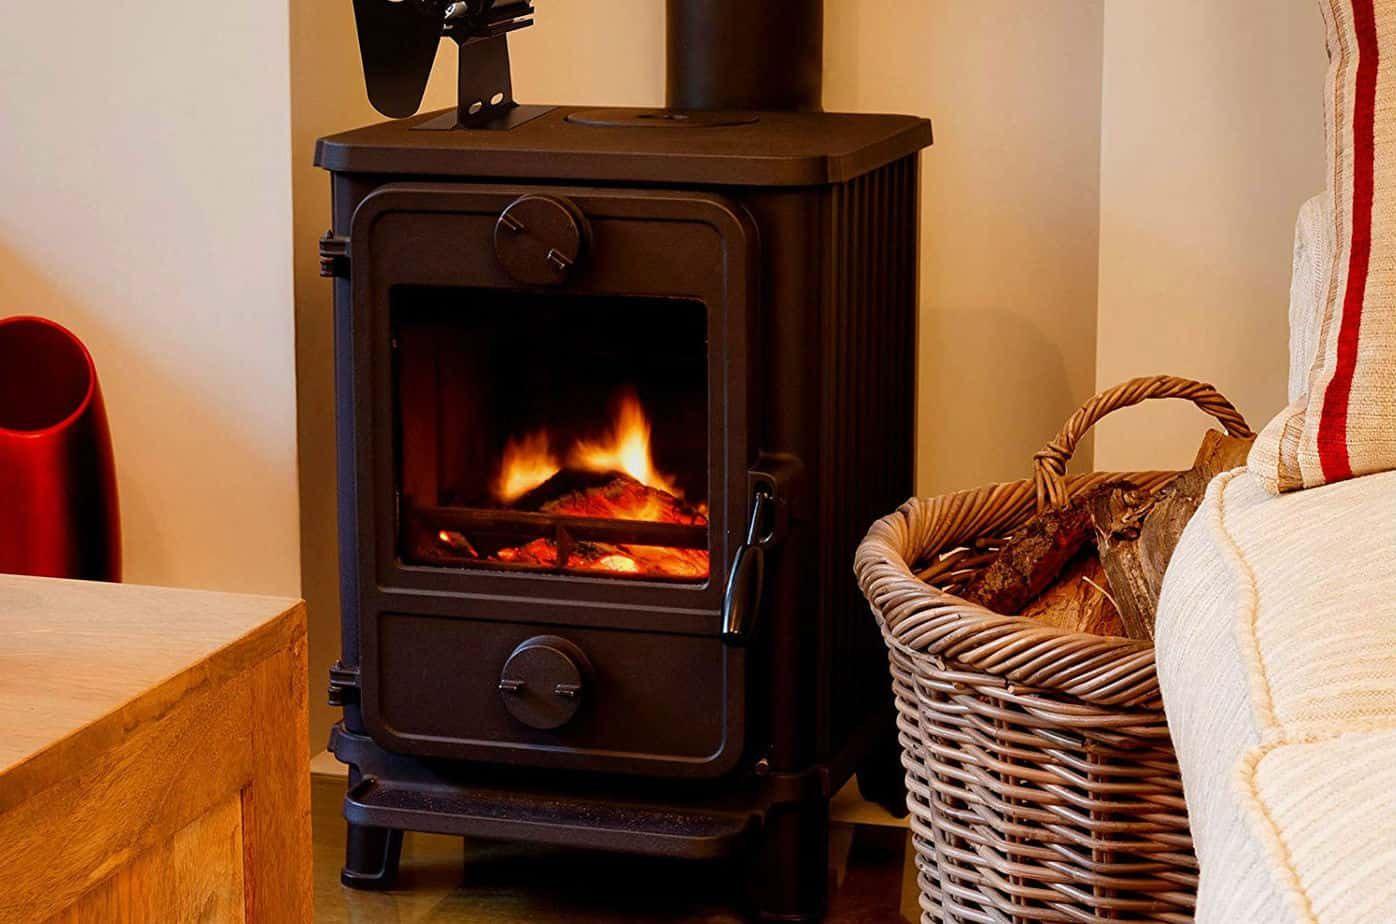 Log burner Installation Cost and Guide